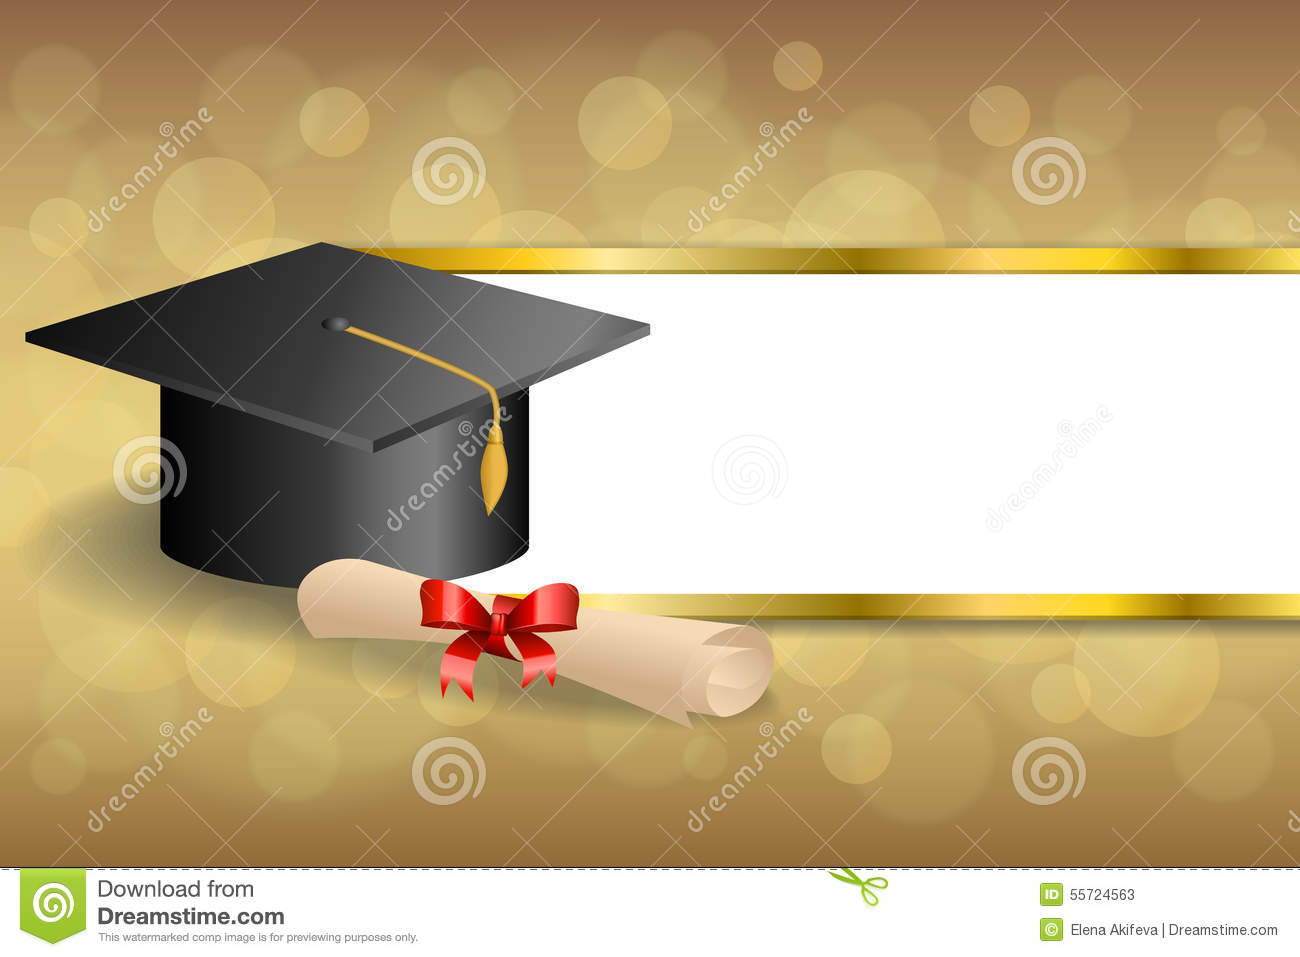 Abstract Background Beige Education Graduation Cap Diploma Red Bow ...